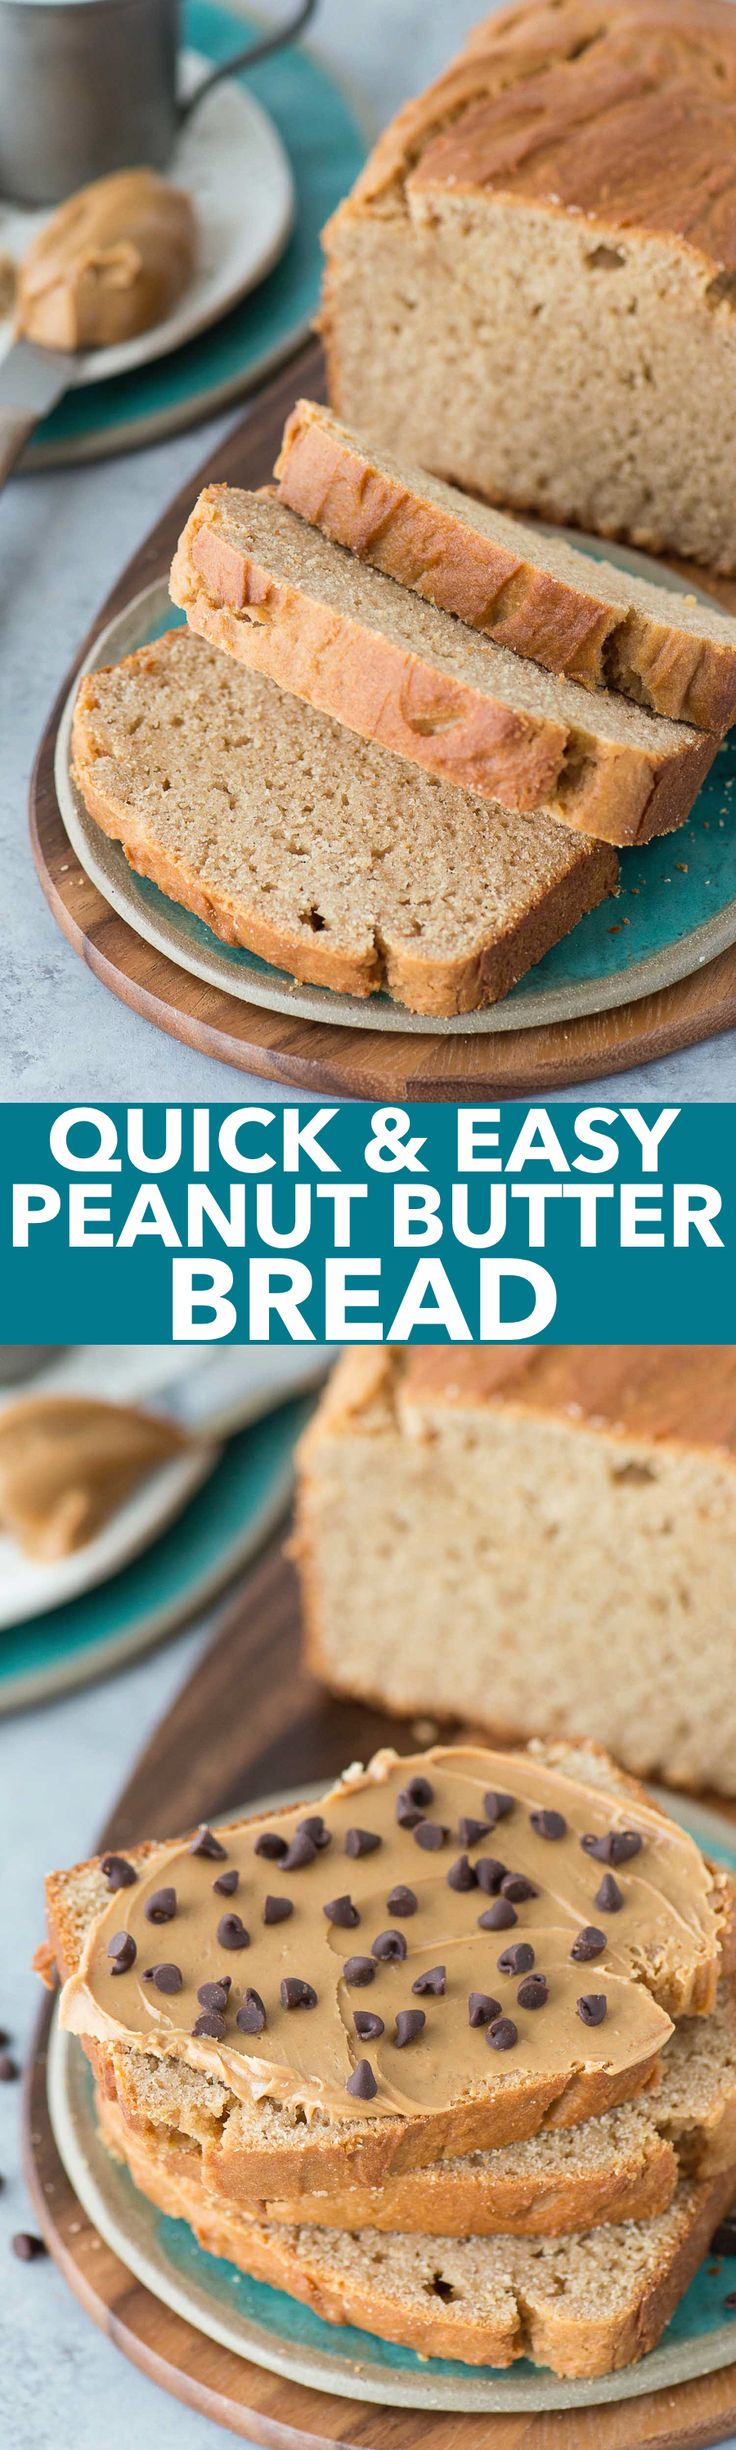 1 hour Peanut Butter Quick Bread! Easy to make and delicious with chocolate chips too!